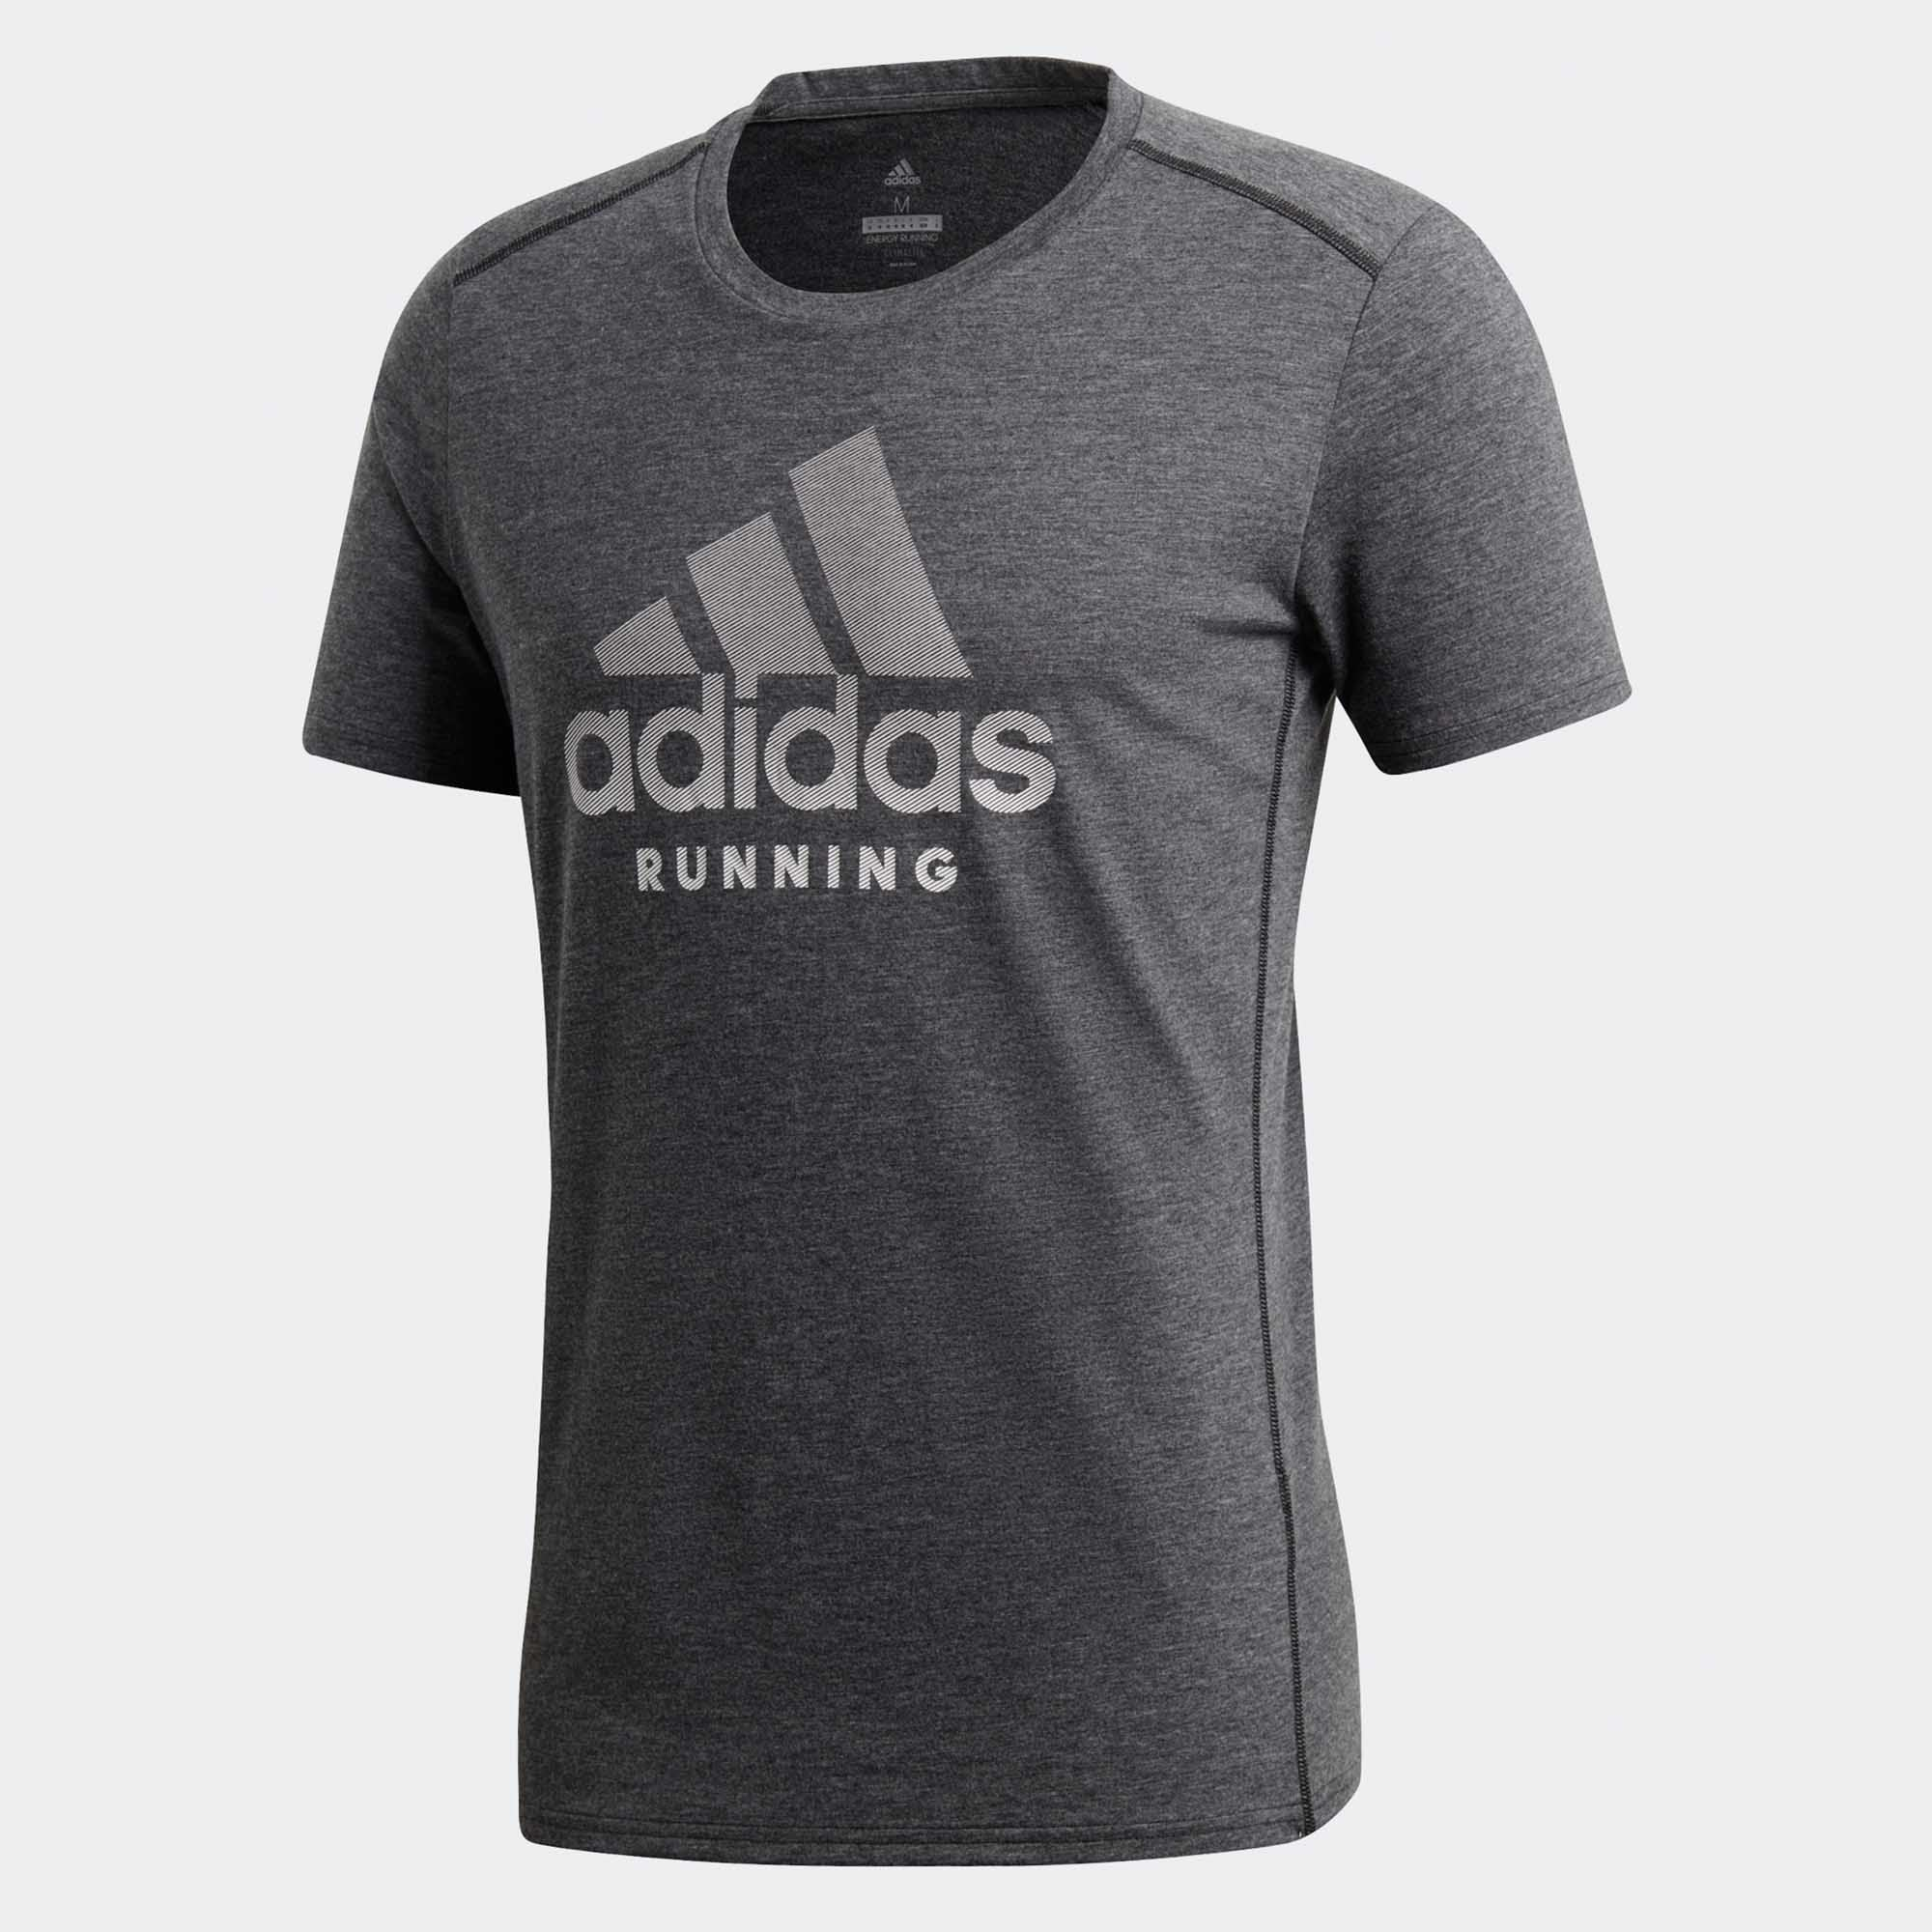 6a92d99e adidas Shoes & Sportswear Online in Singapore | Royal Sporting House